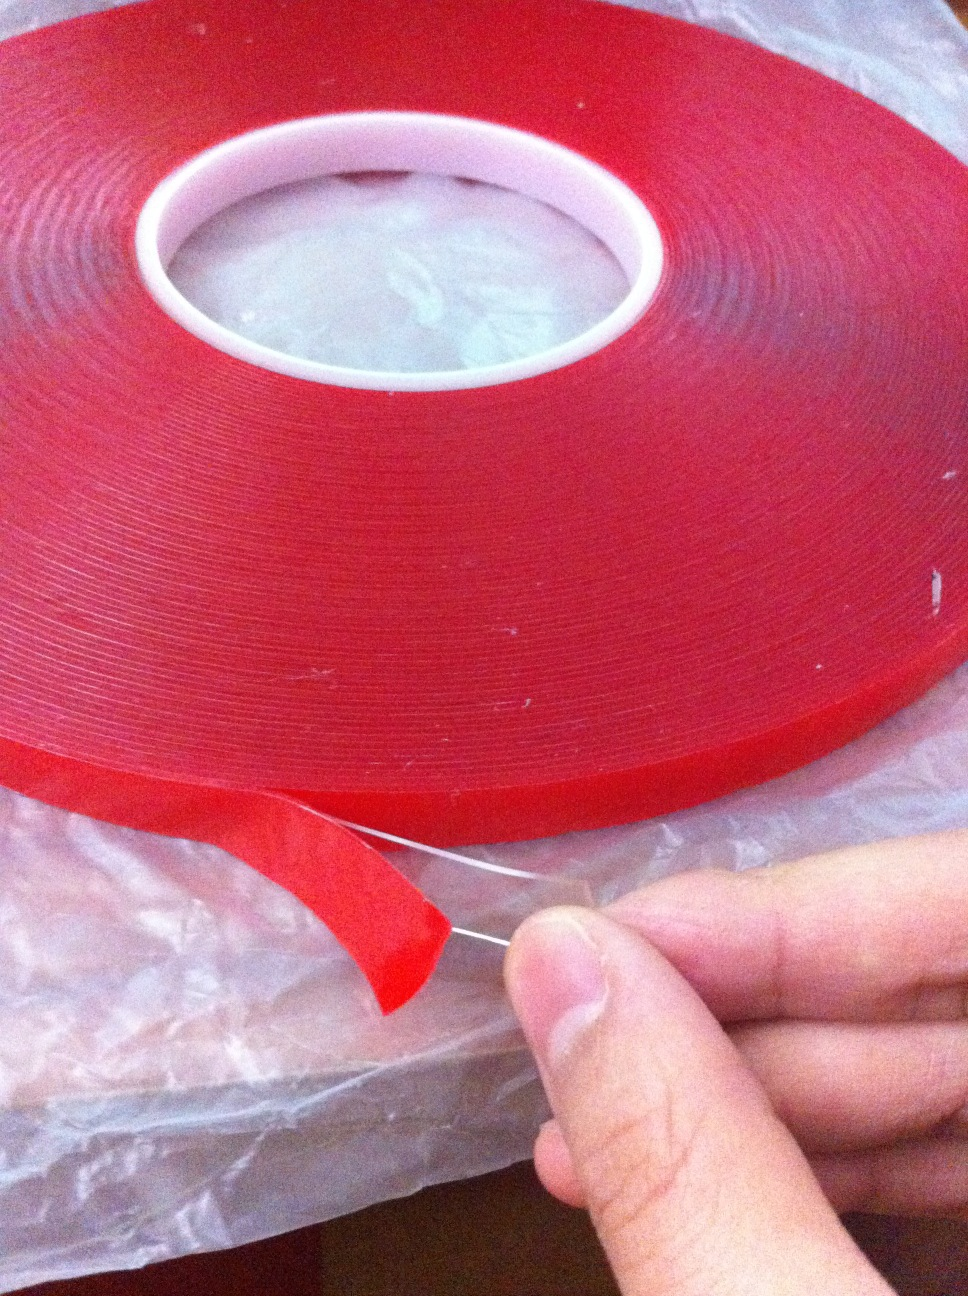 1x 10mm*33 meters*0.8mm double sided transparent acrylic Adhesive Tape for metal / glass / marble / car accessories attachment 5x 5mm 33 meters 0 8mm double sided transparent acrylic glue adhesive tape for auto glass metal car track shim attachment